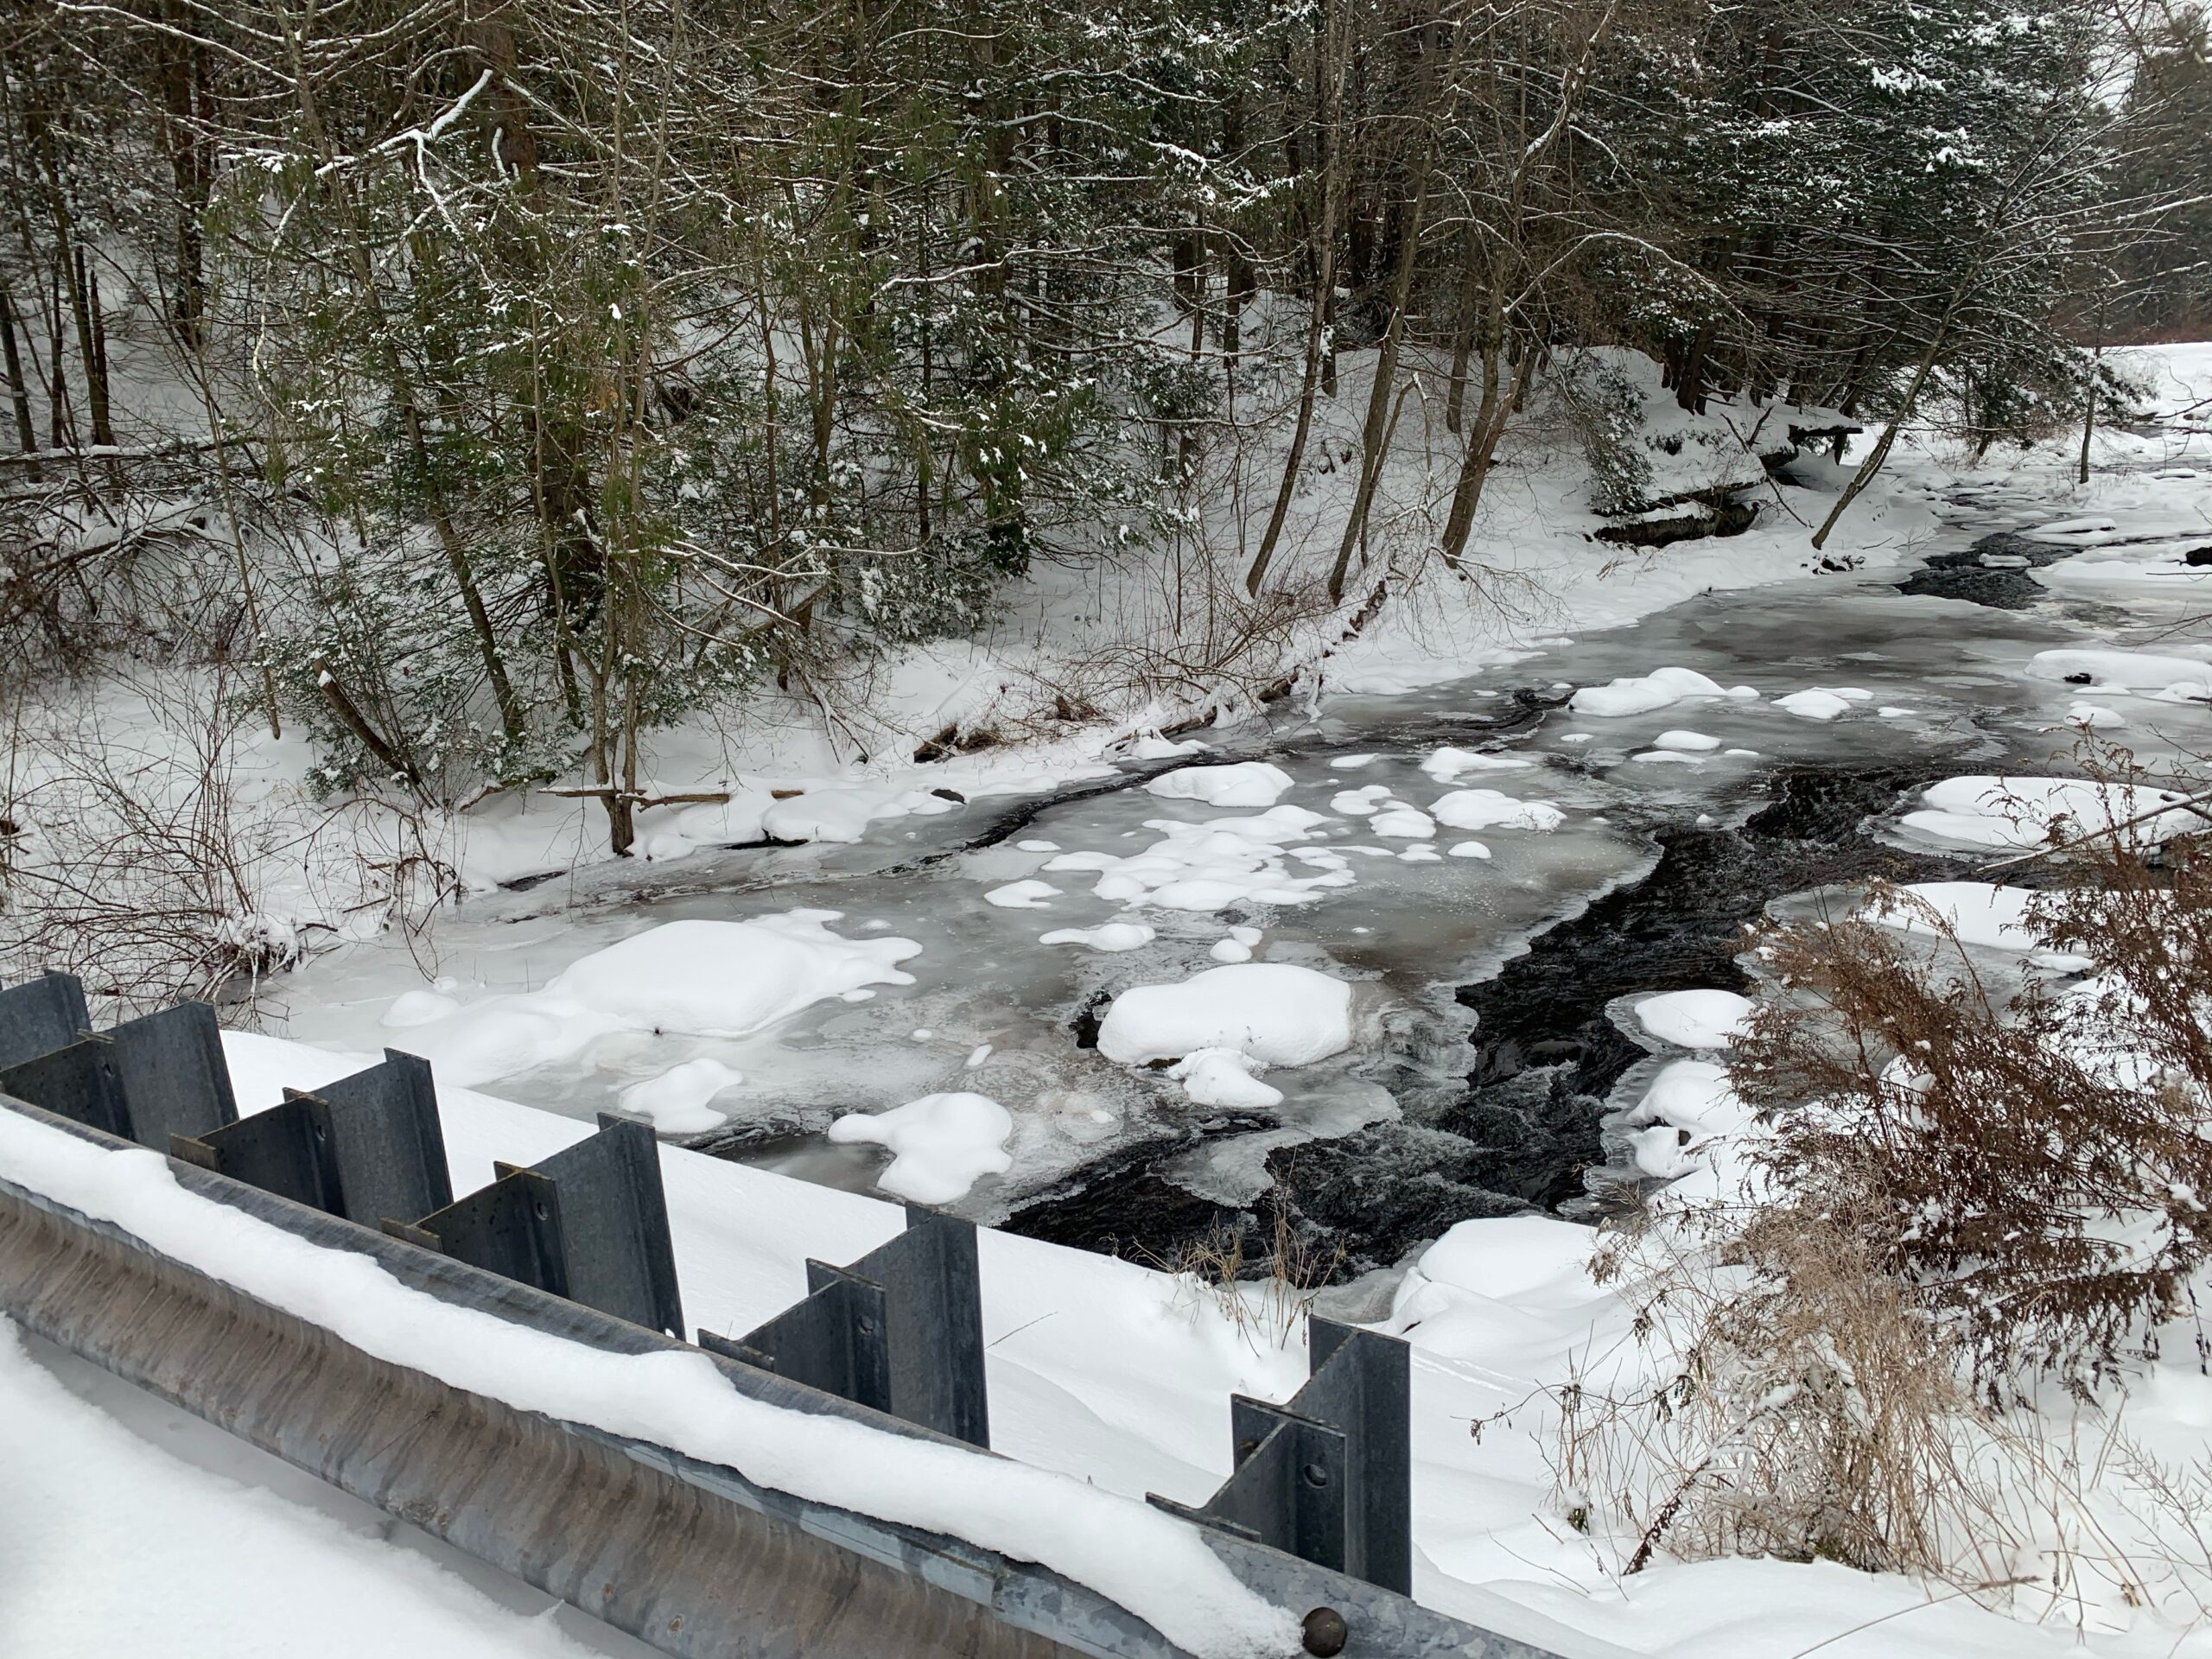 Winter conditions at local streams